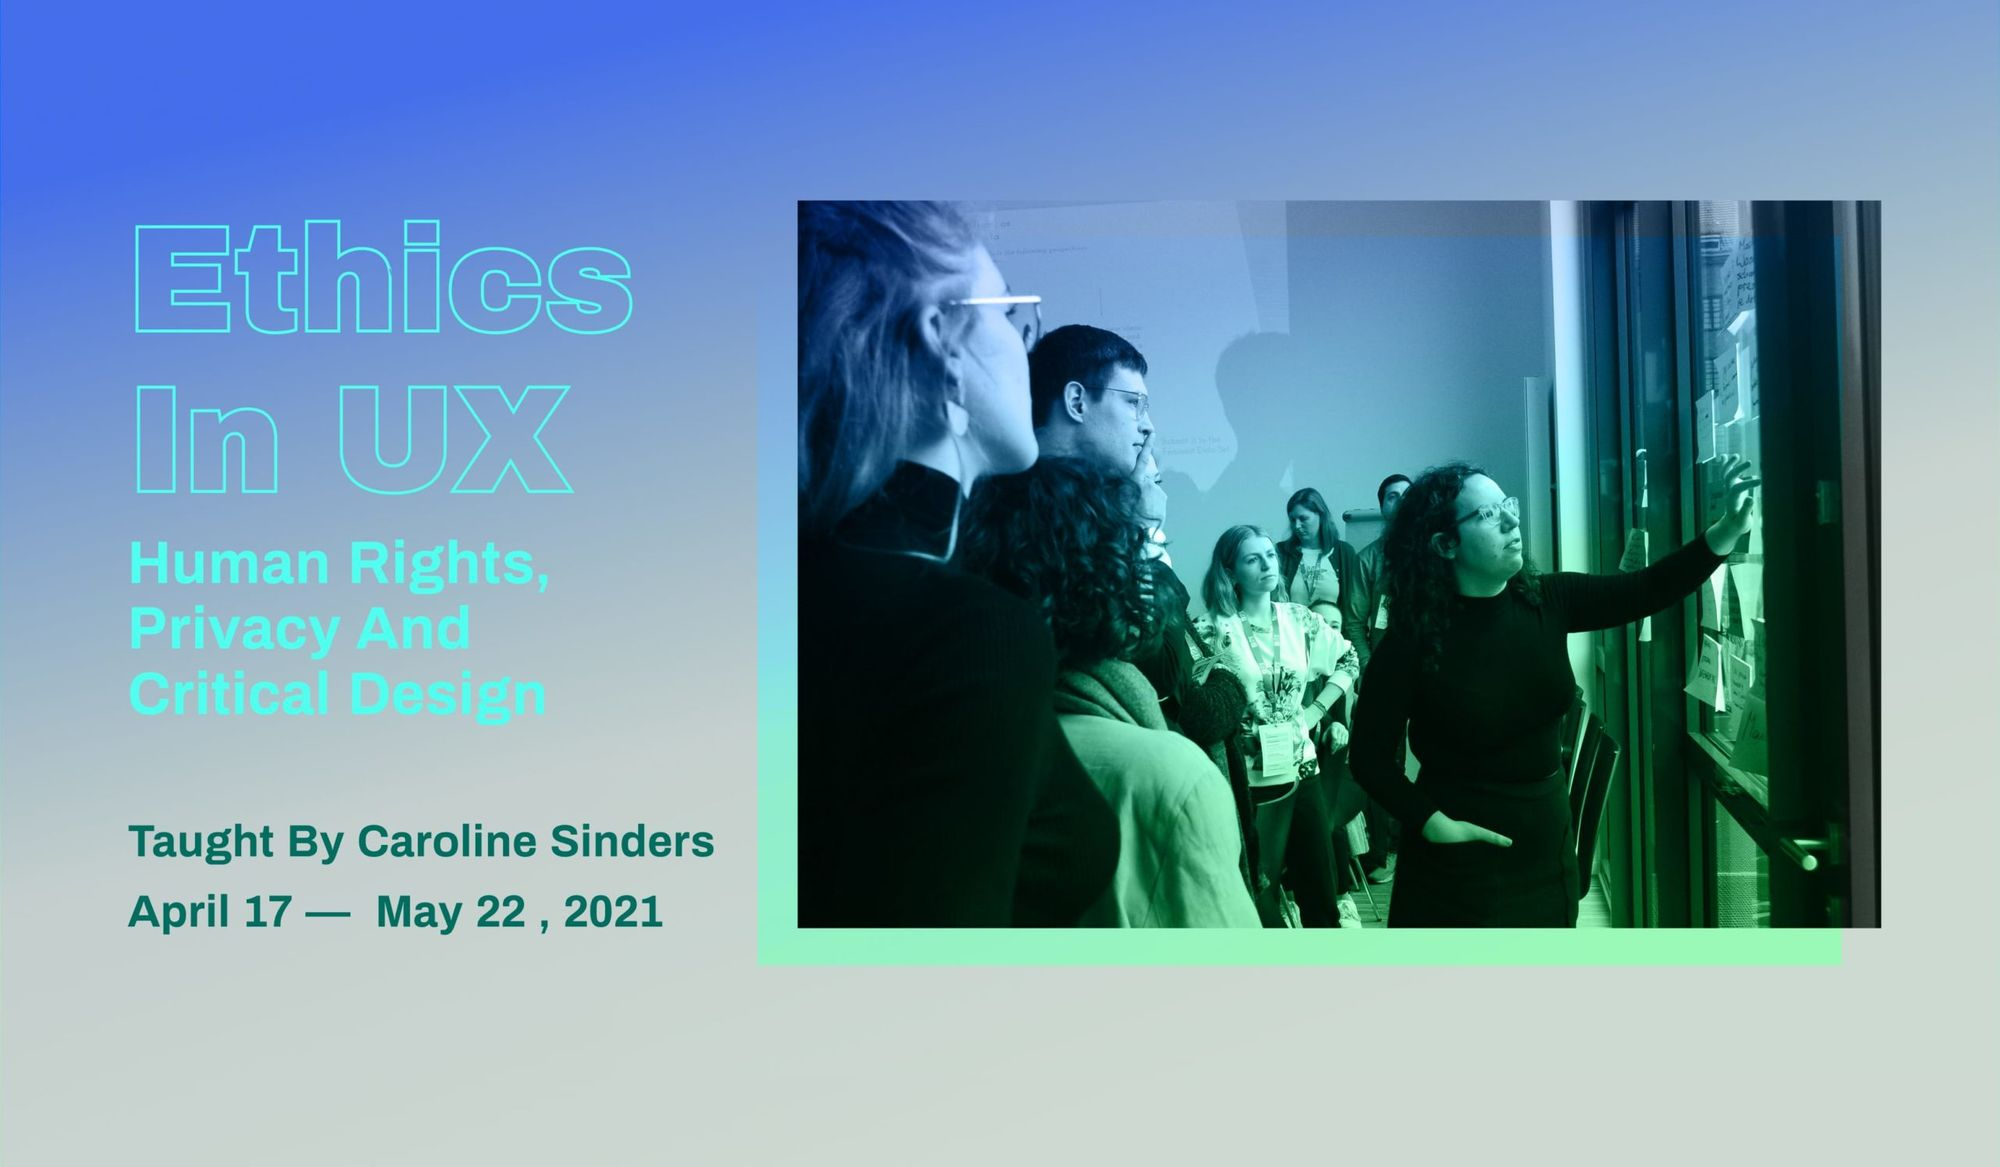 Ethics in UX, a course taught by Caroline Sinders